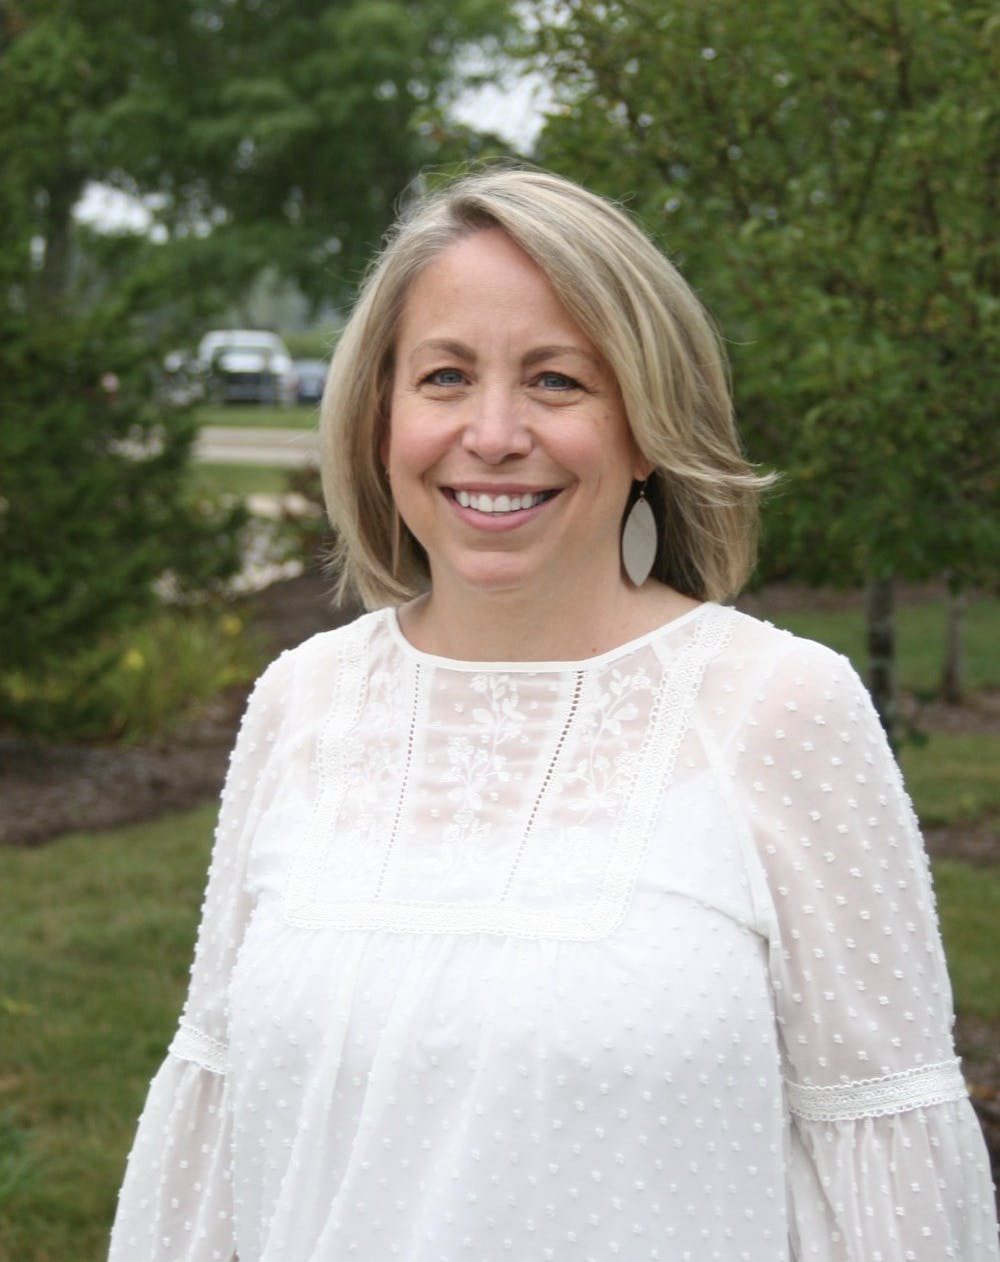 New counseling director seeks stability